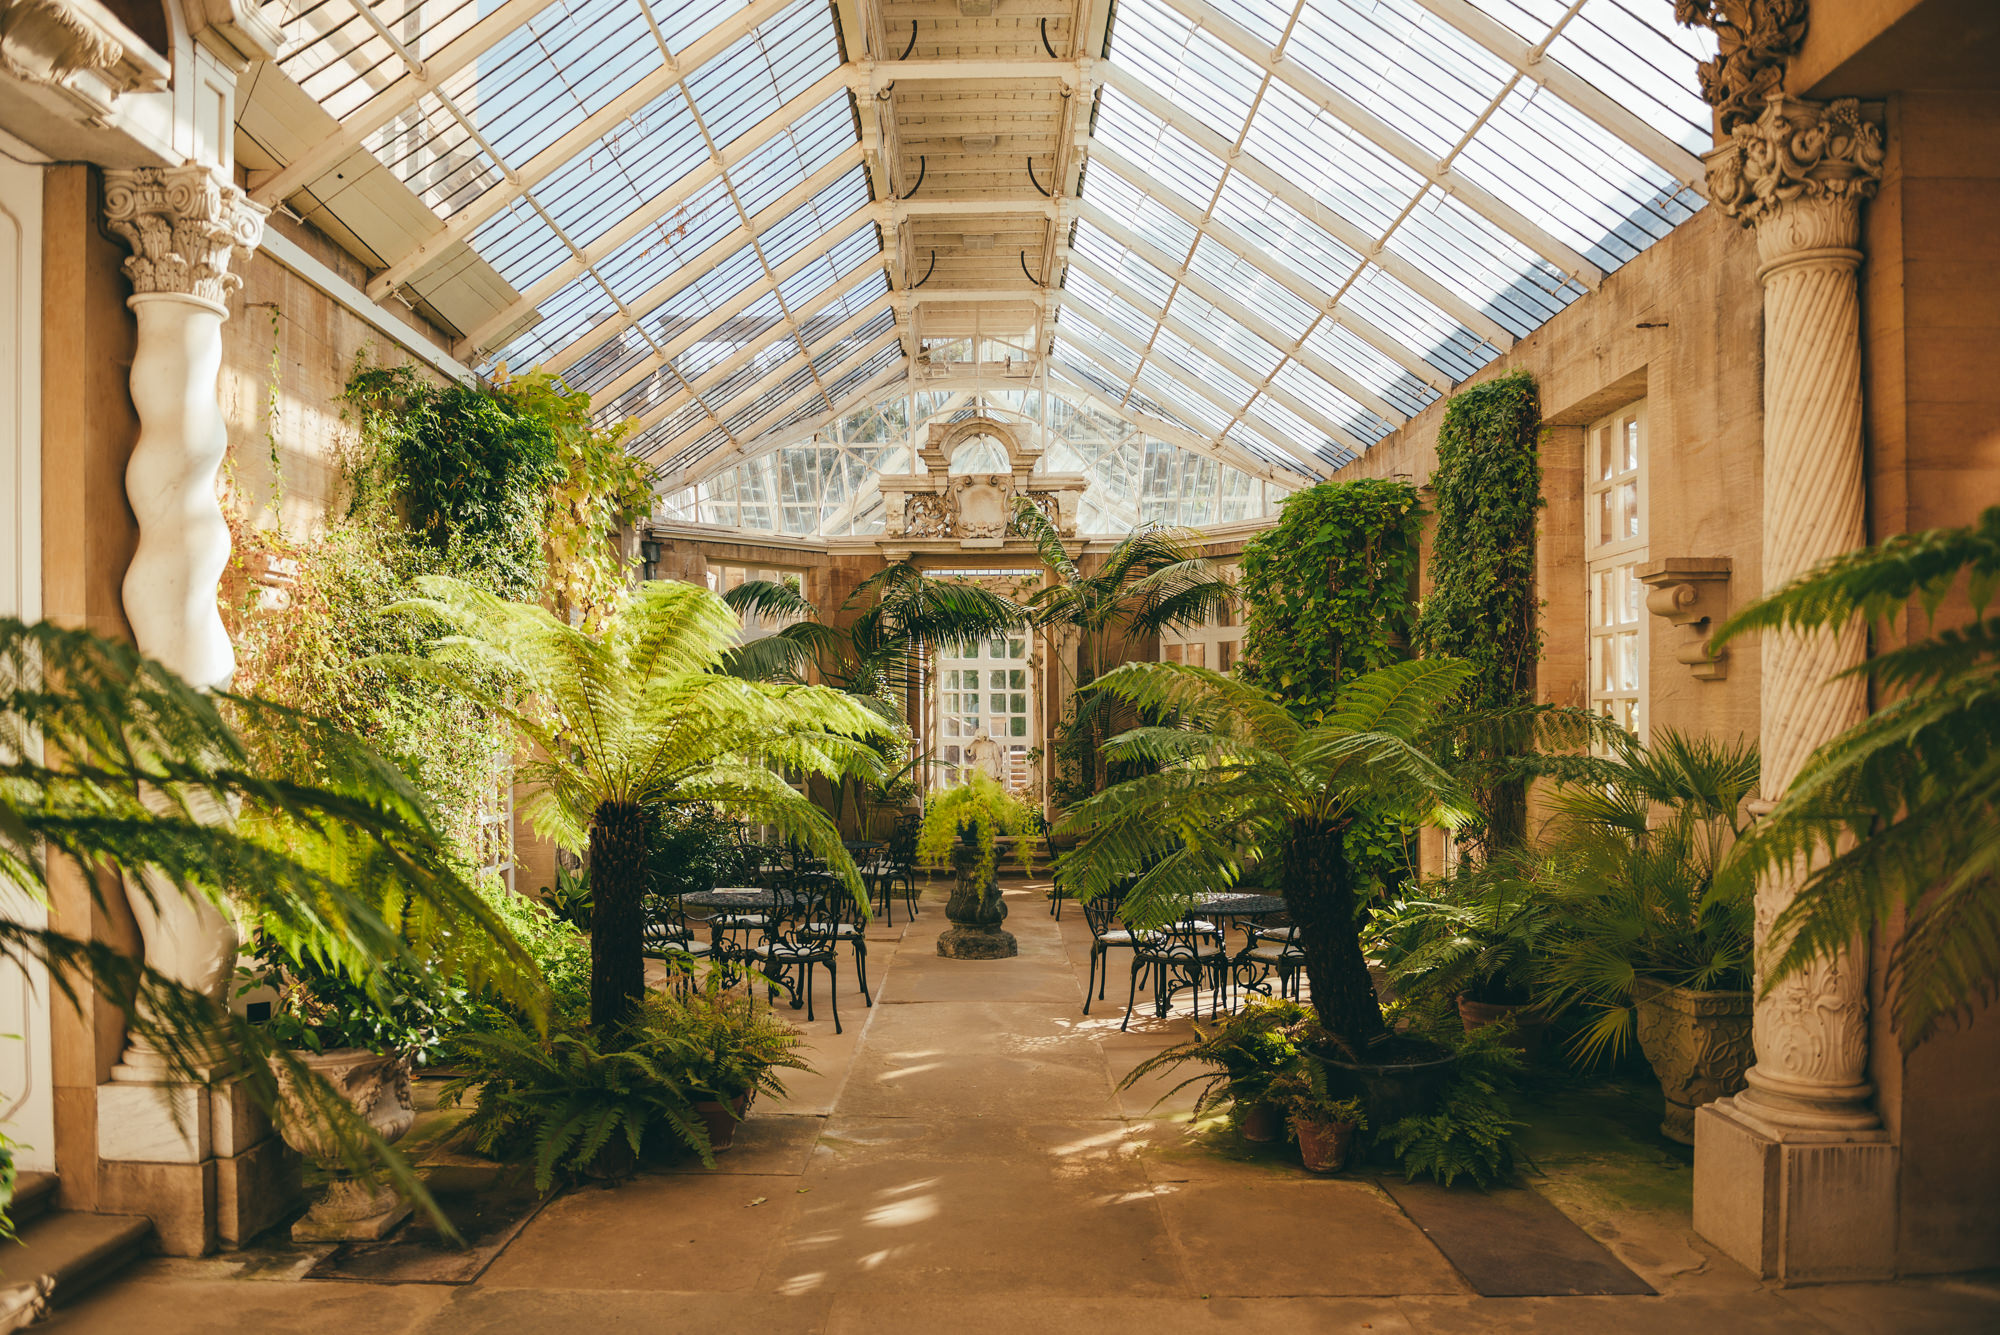 the conservatory in the sunlight at Harlaxton Manor